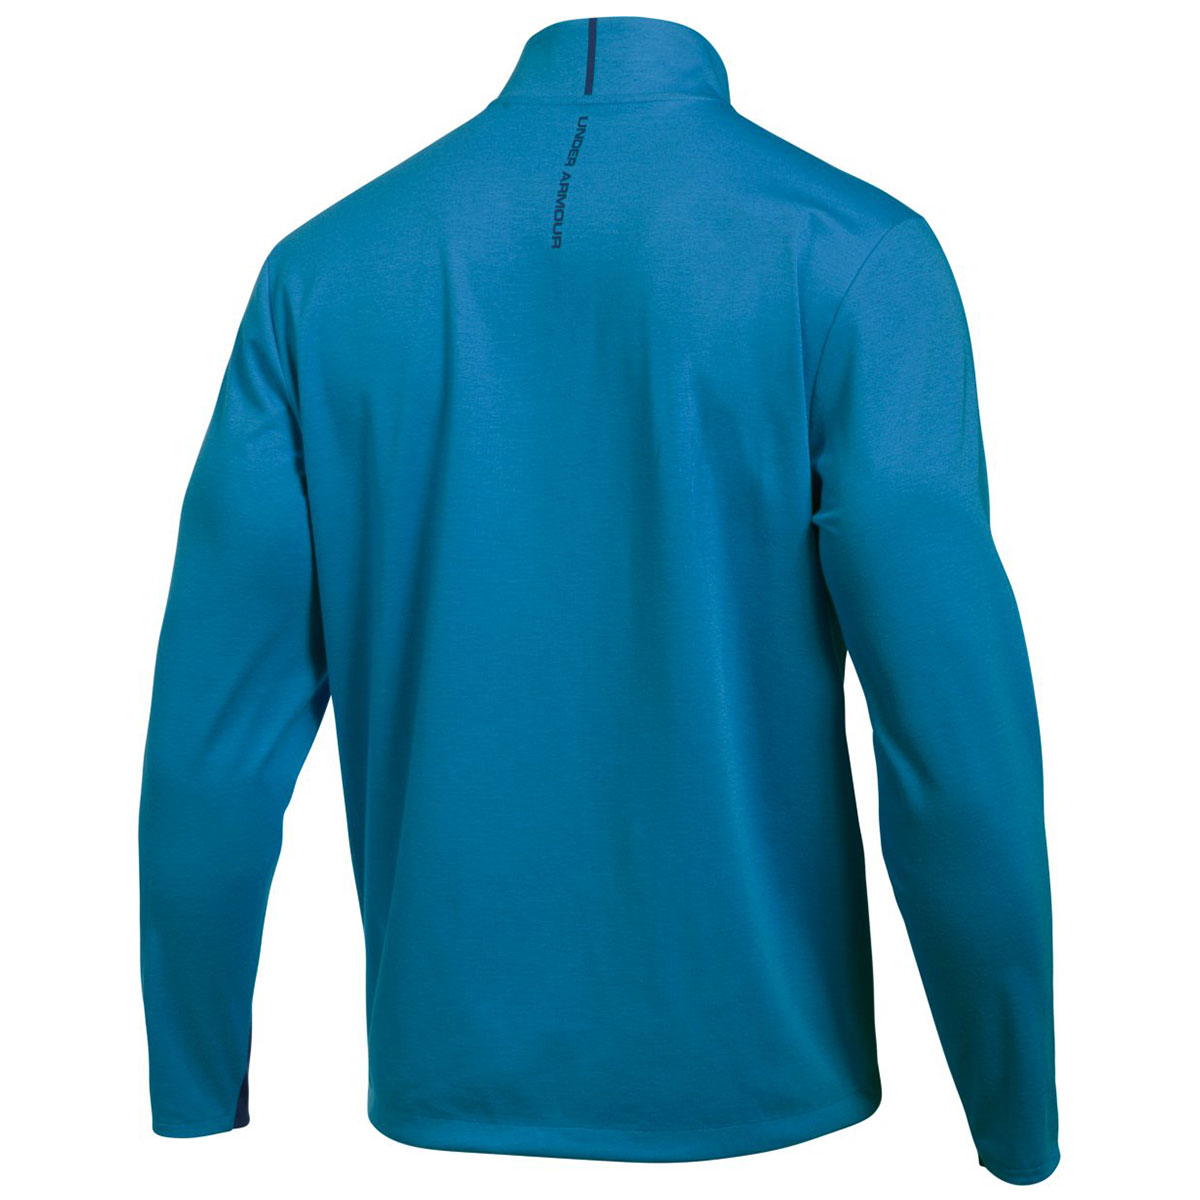 Under-Armour-Mens-UA-Storm-1-4-Zip-Performance-Golf-Sweater-Pullover-40-OFF-RRP thumbnail 7